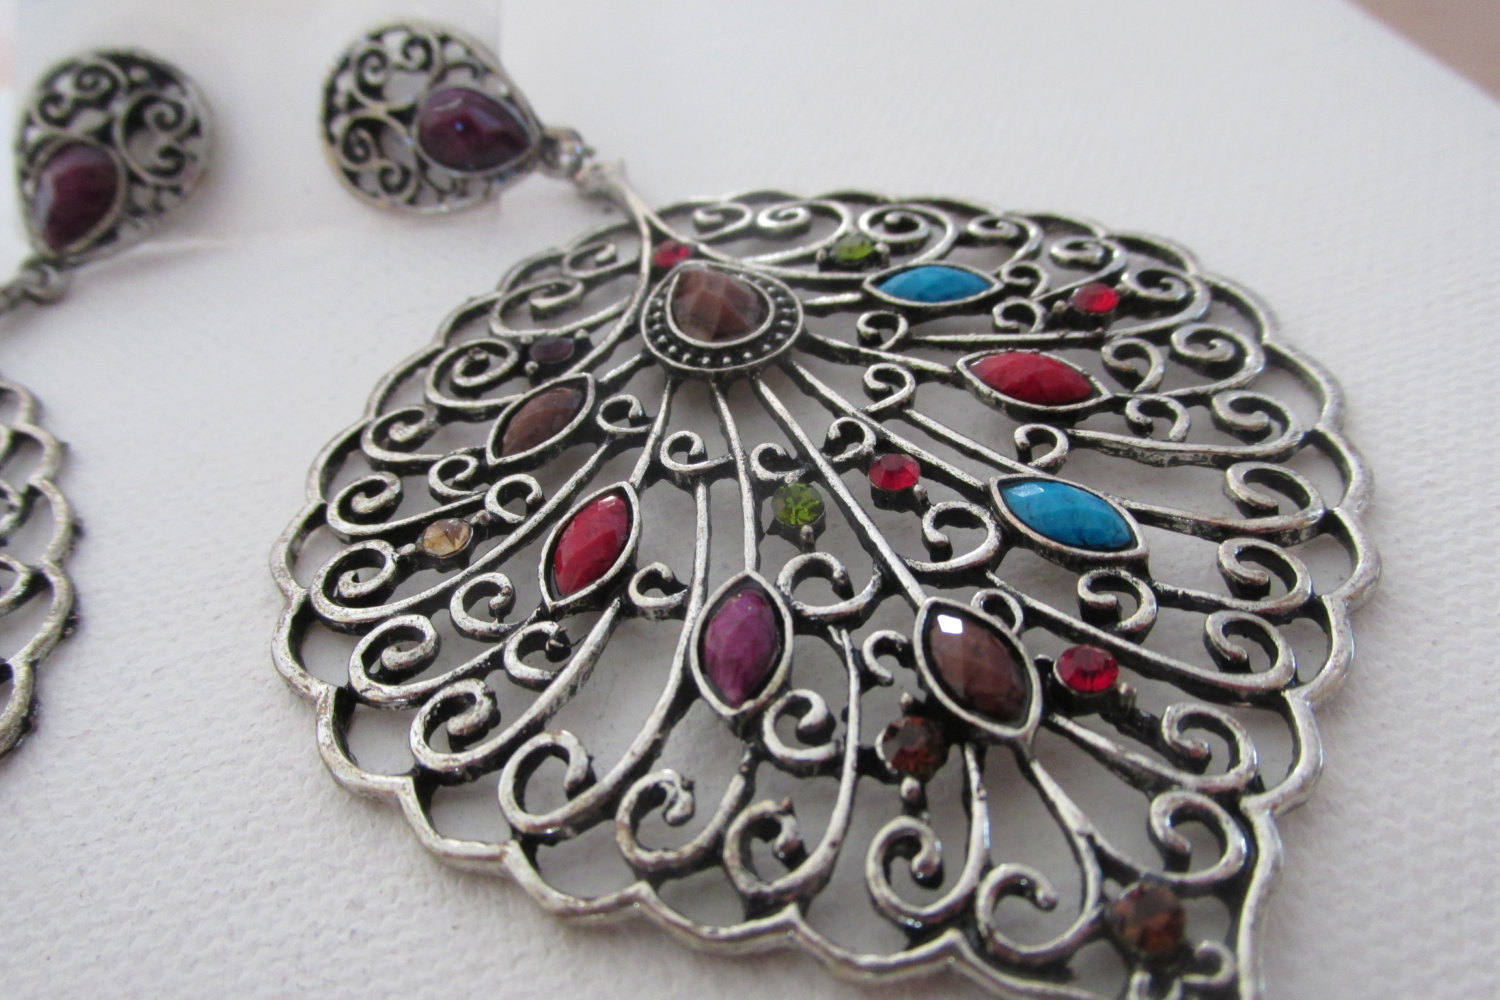 Reasons Supporting the Need to Follow the Silver Jewelry Trend